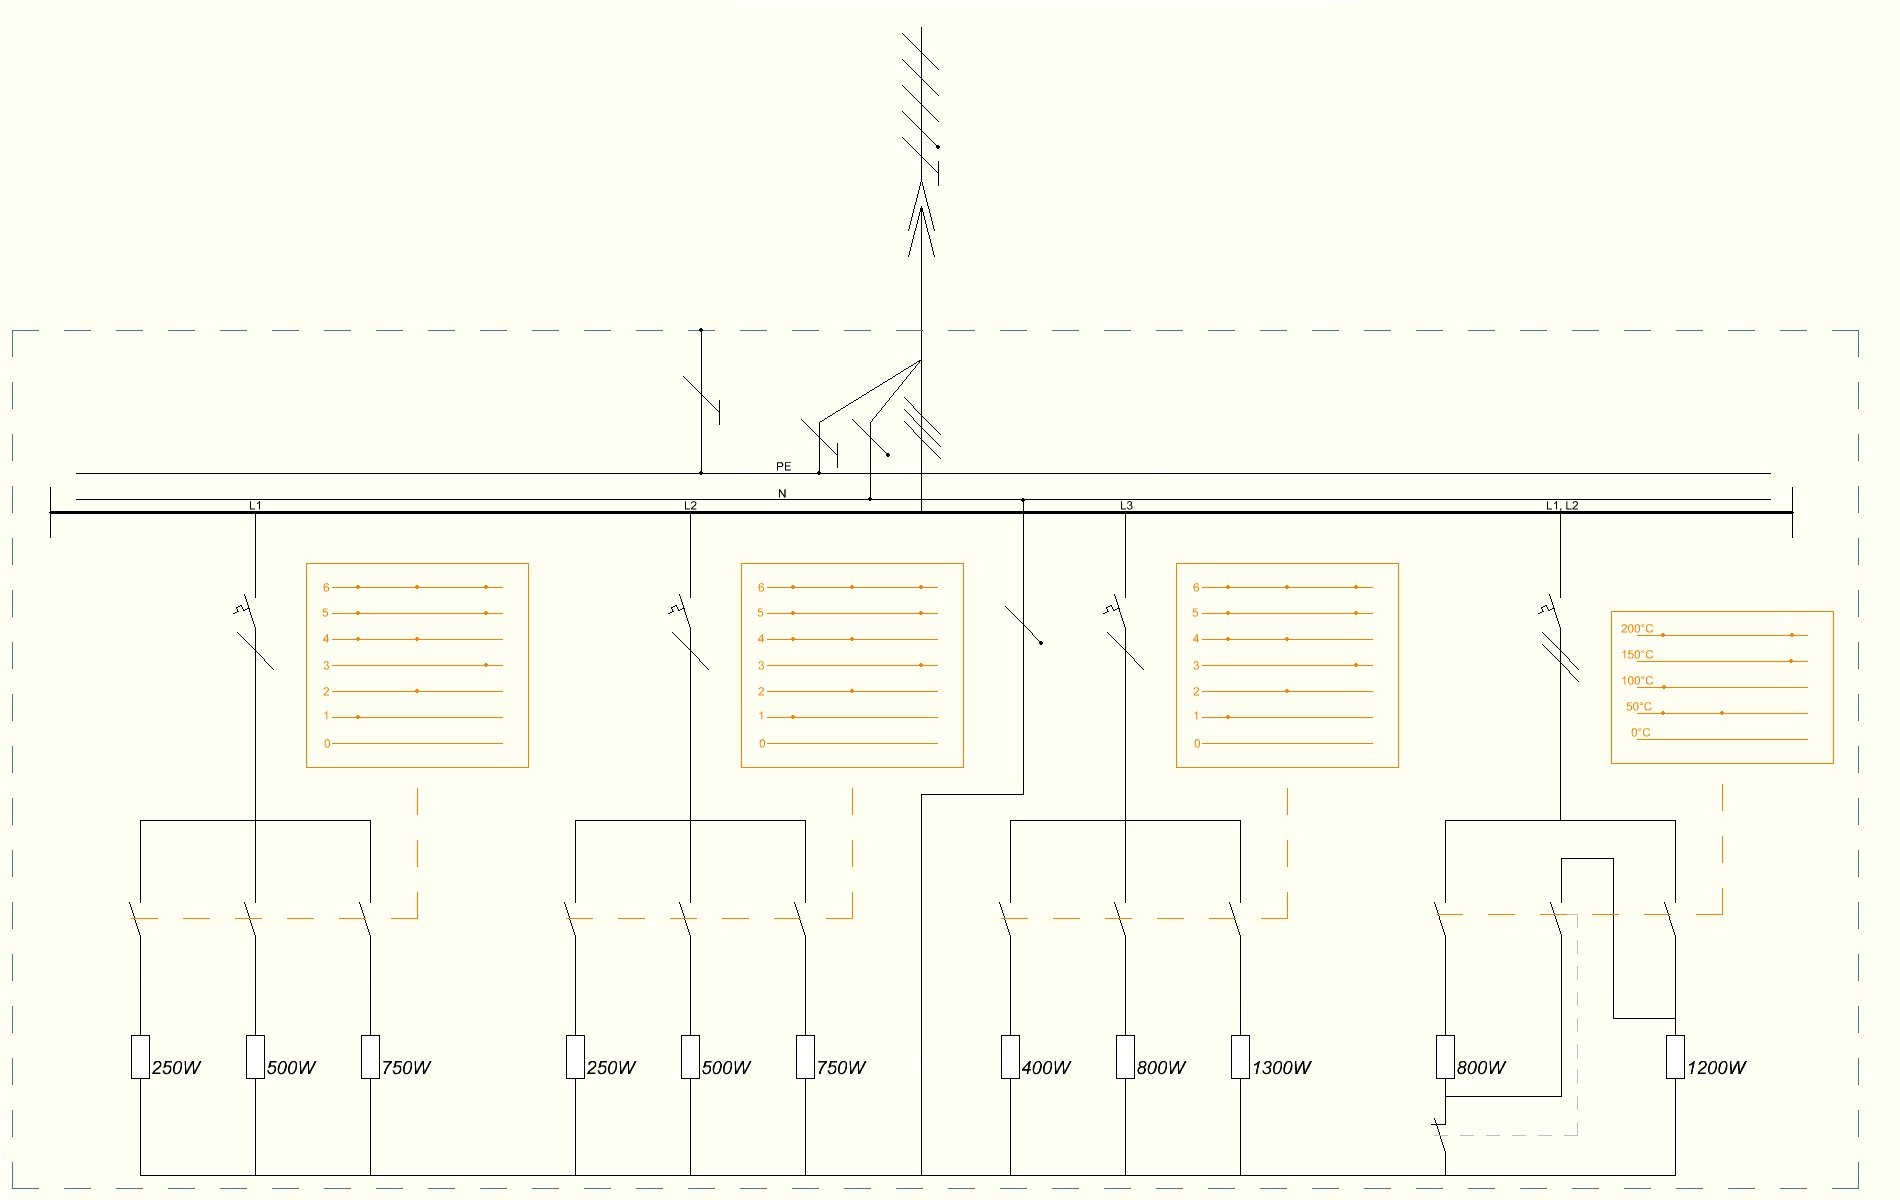 file schematic wiring diagram of electrical stove jpg wikimedia rh commons wikimedia org electrical wiring diagrams for house electrical wiring diagrams for house